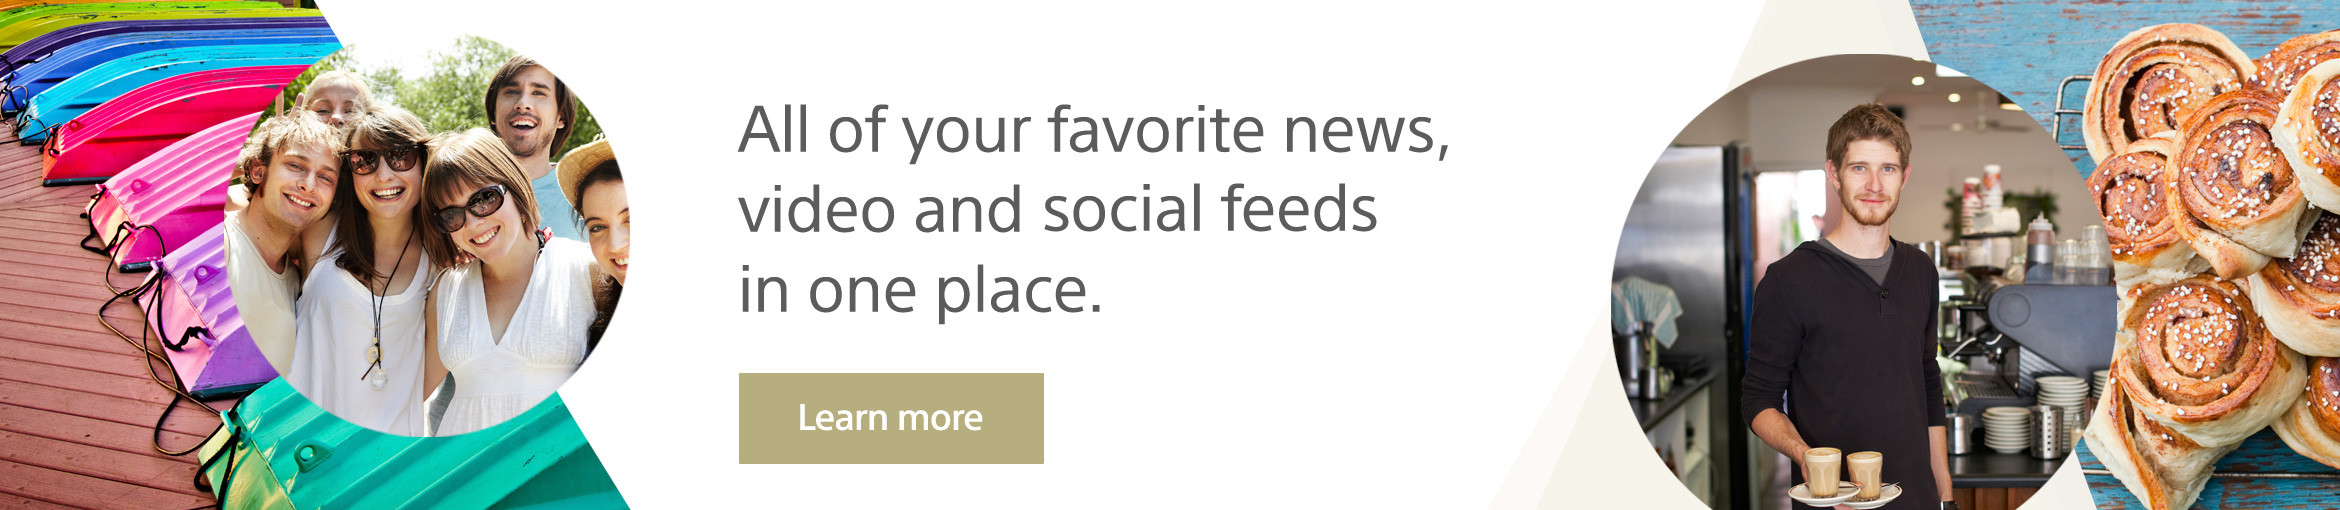 All of your favorite news, video and social feeds in one place.